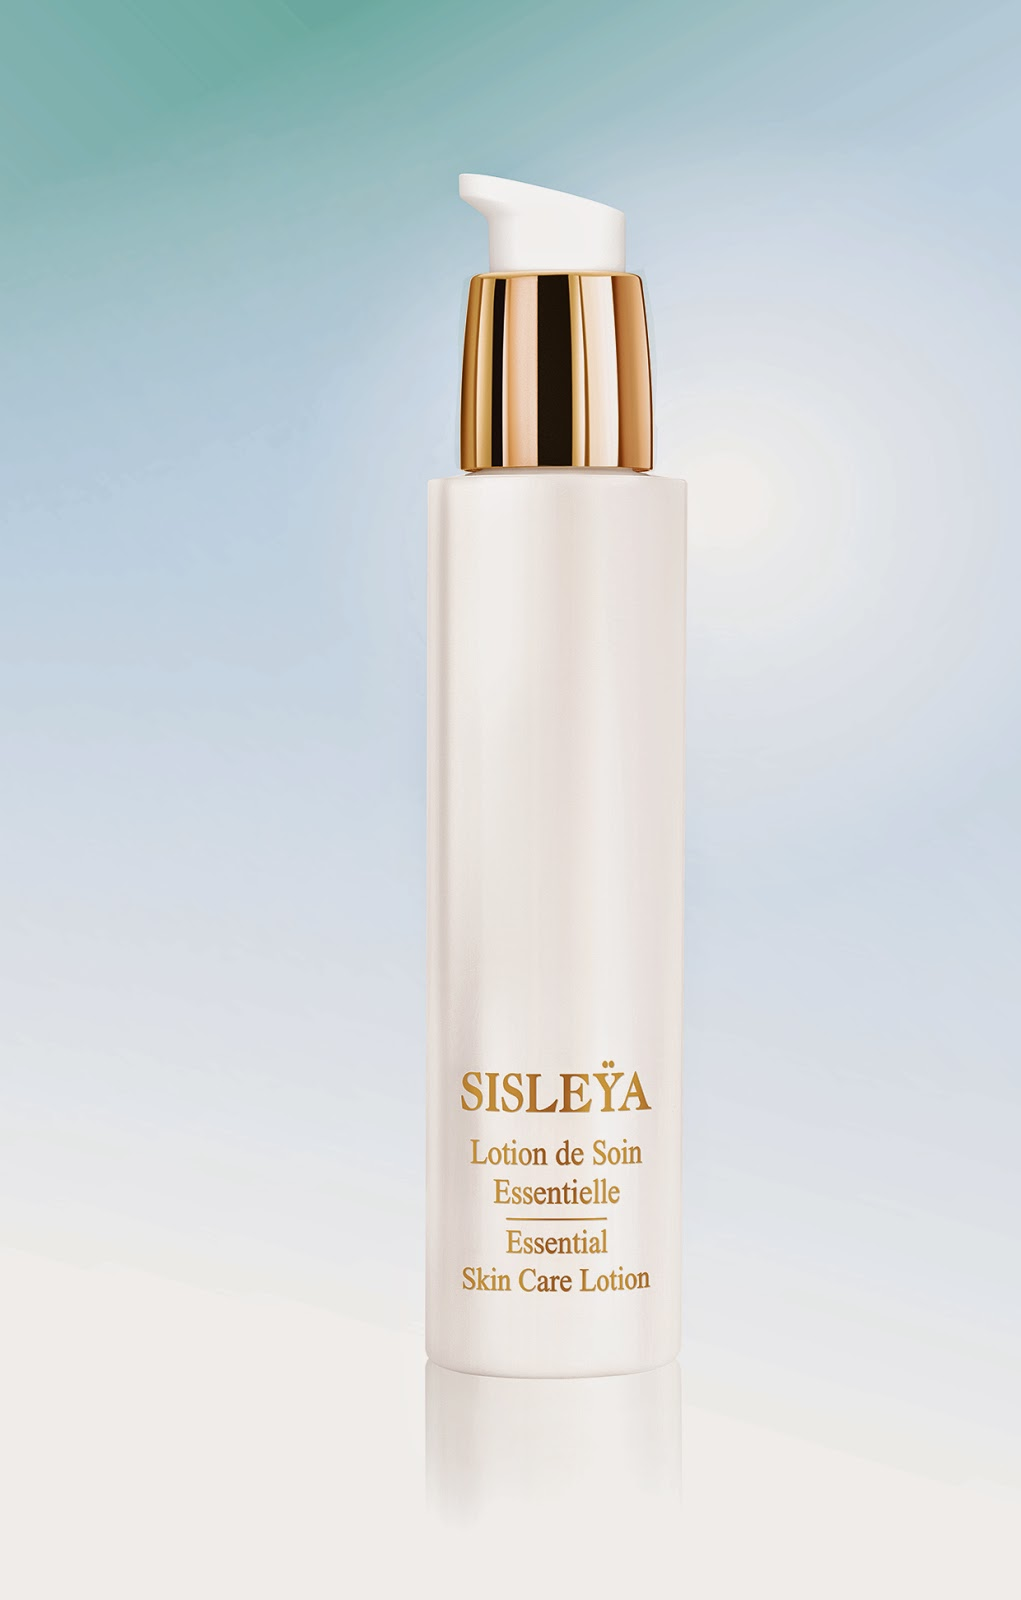 Sisley Sisleya Essential Skin Care Lotion 150 ml